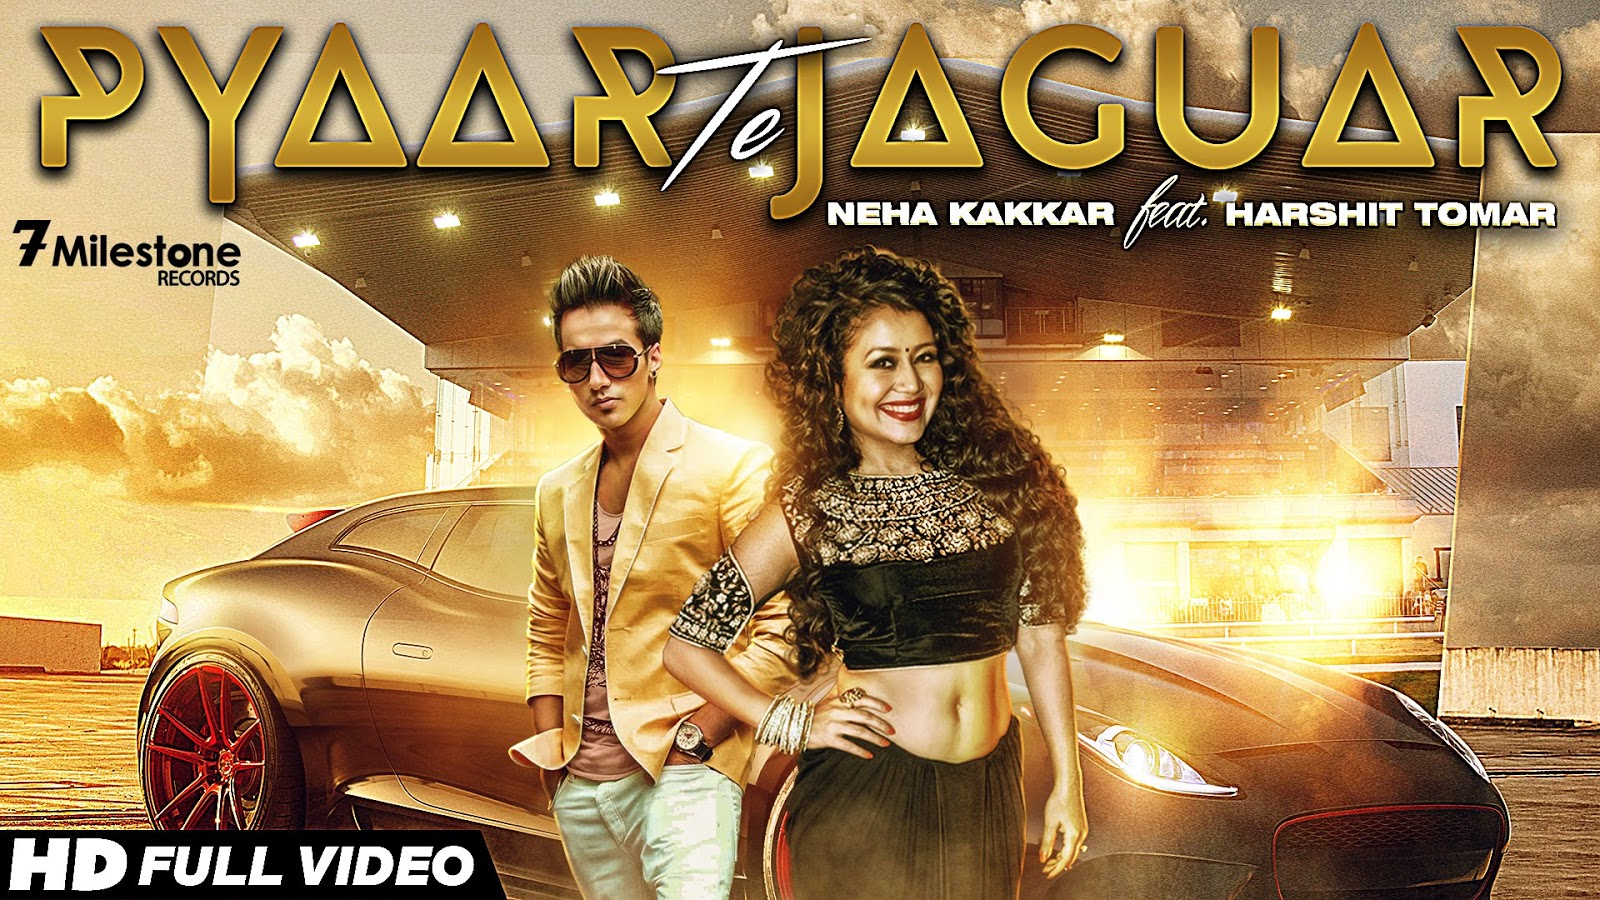 Pyaar Te Jaguar Neha Kakkar mp3 download video hd mp4